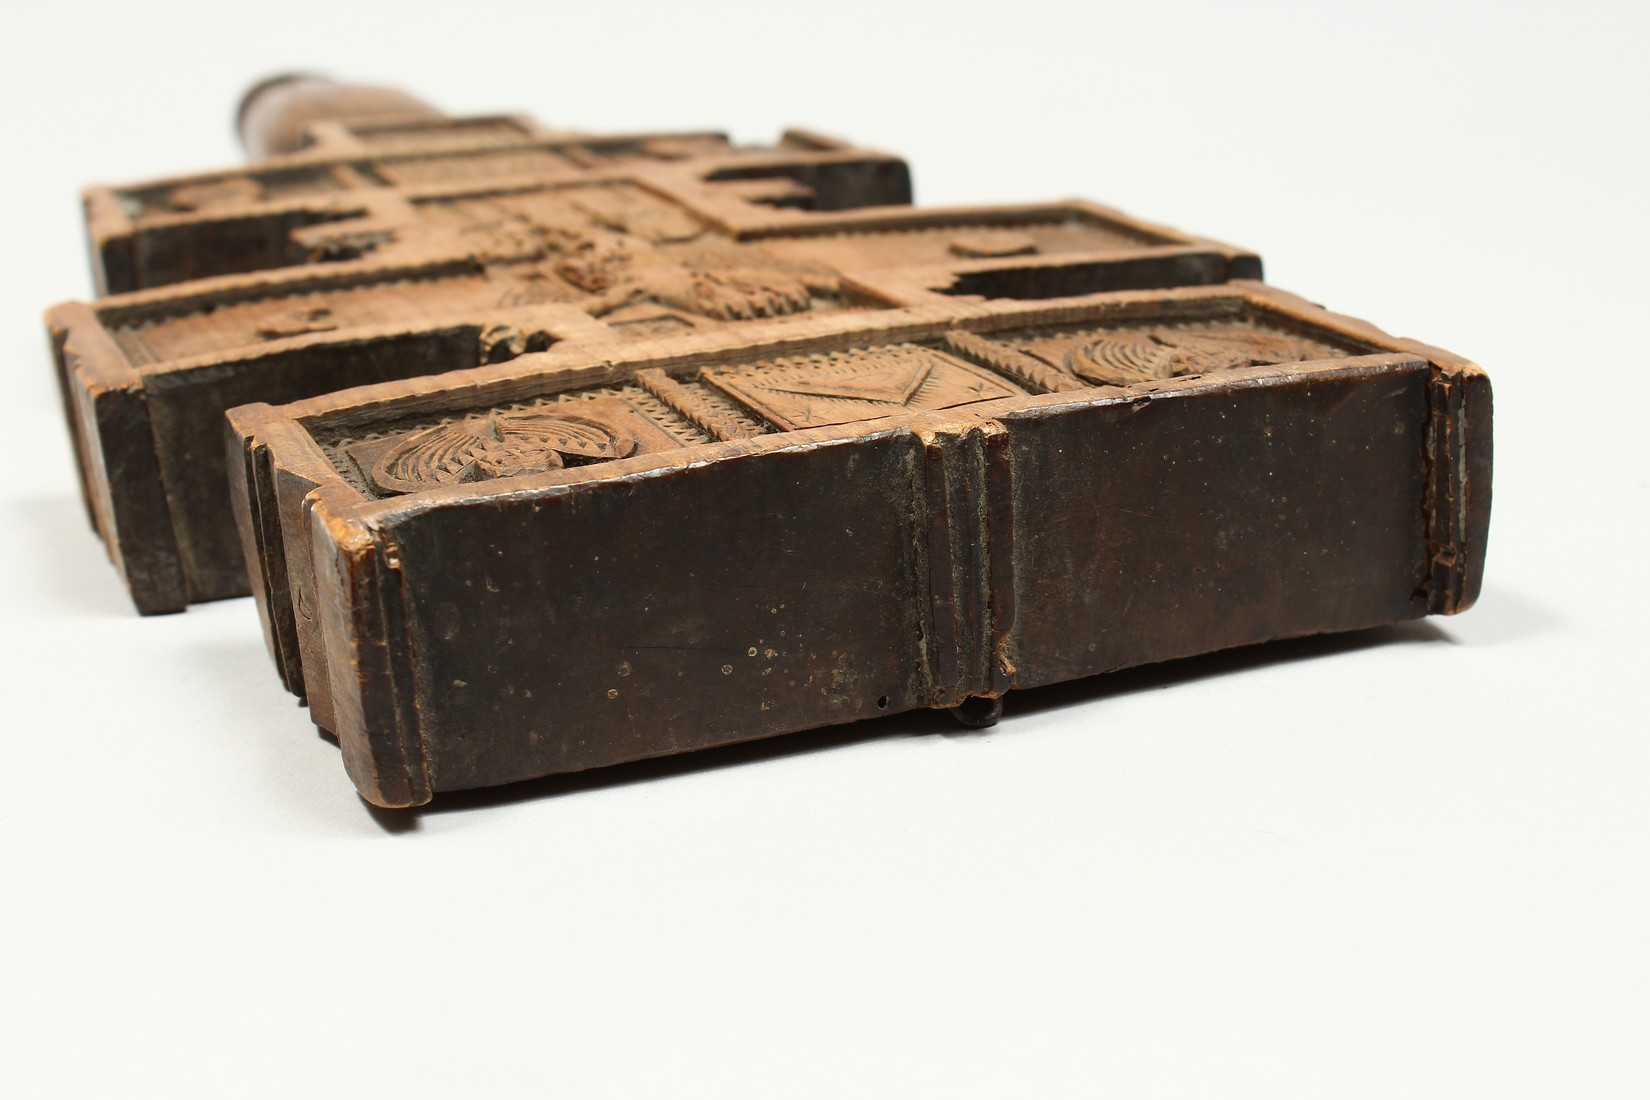 AN 18TH CENTURY GREEK CARVED WOODEN CROSS. 15ins long. - Image 11 of 11